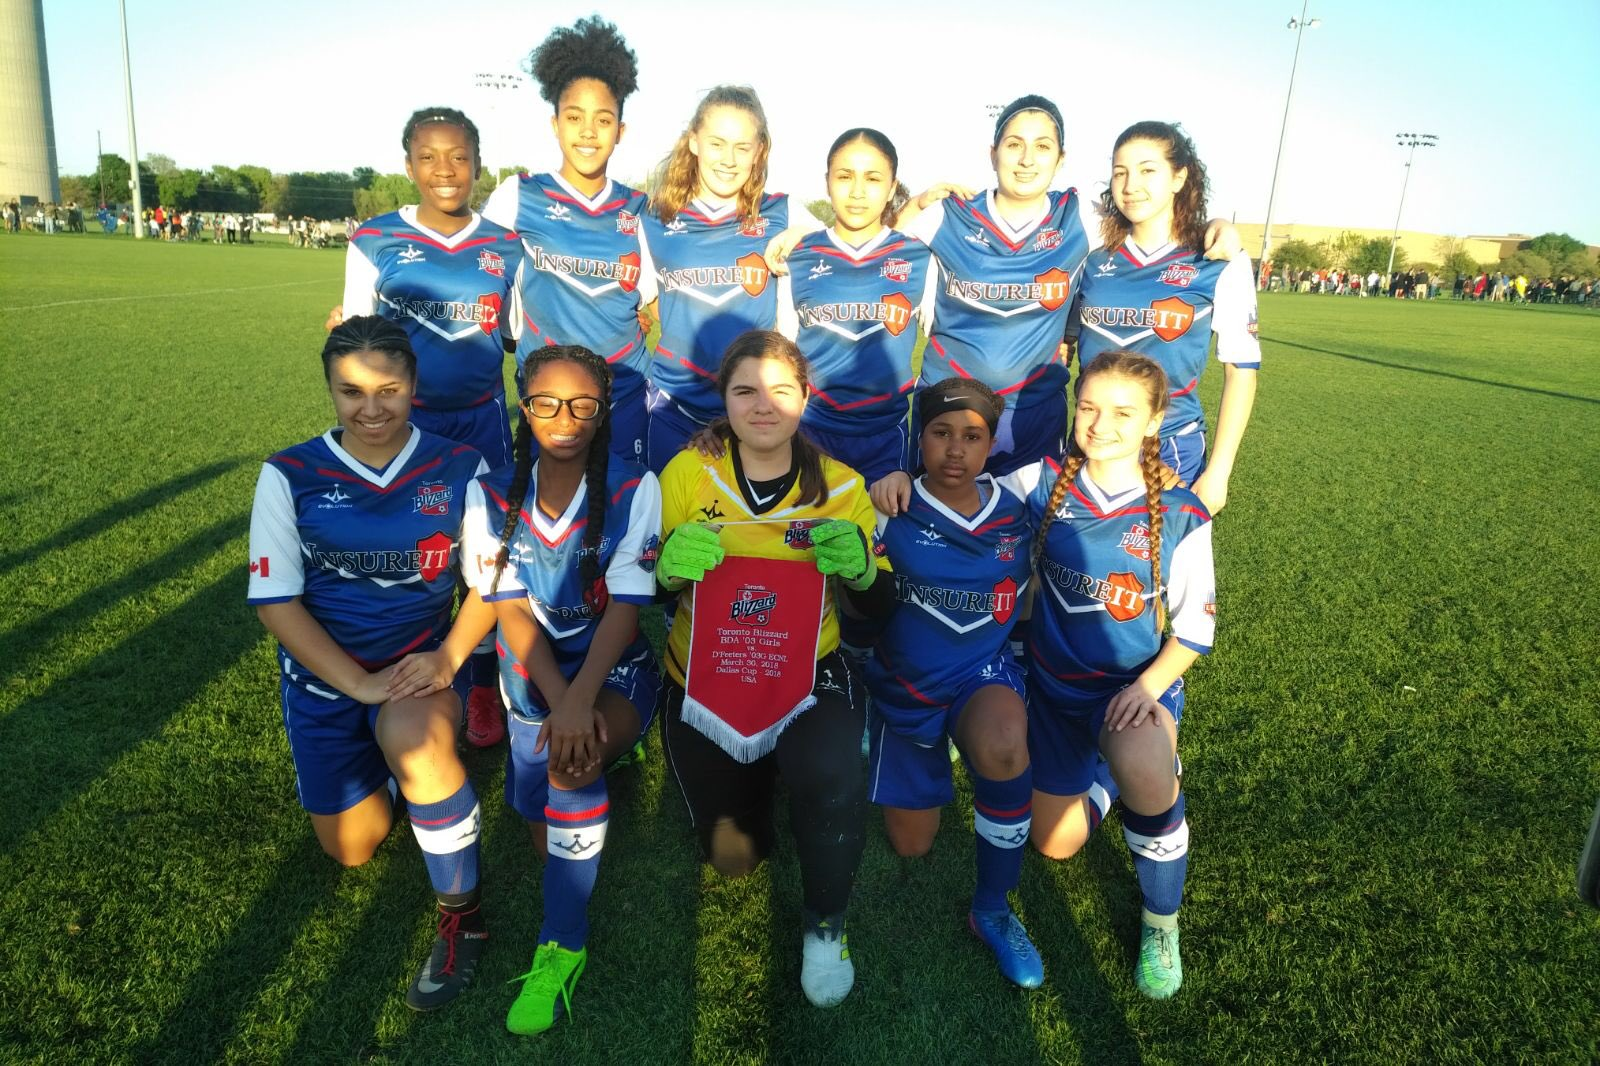 toronto blizzard on twitter game night blizzard against dfeeters dallasgirlscup digc2018